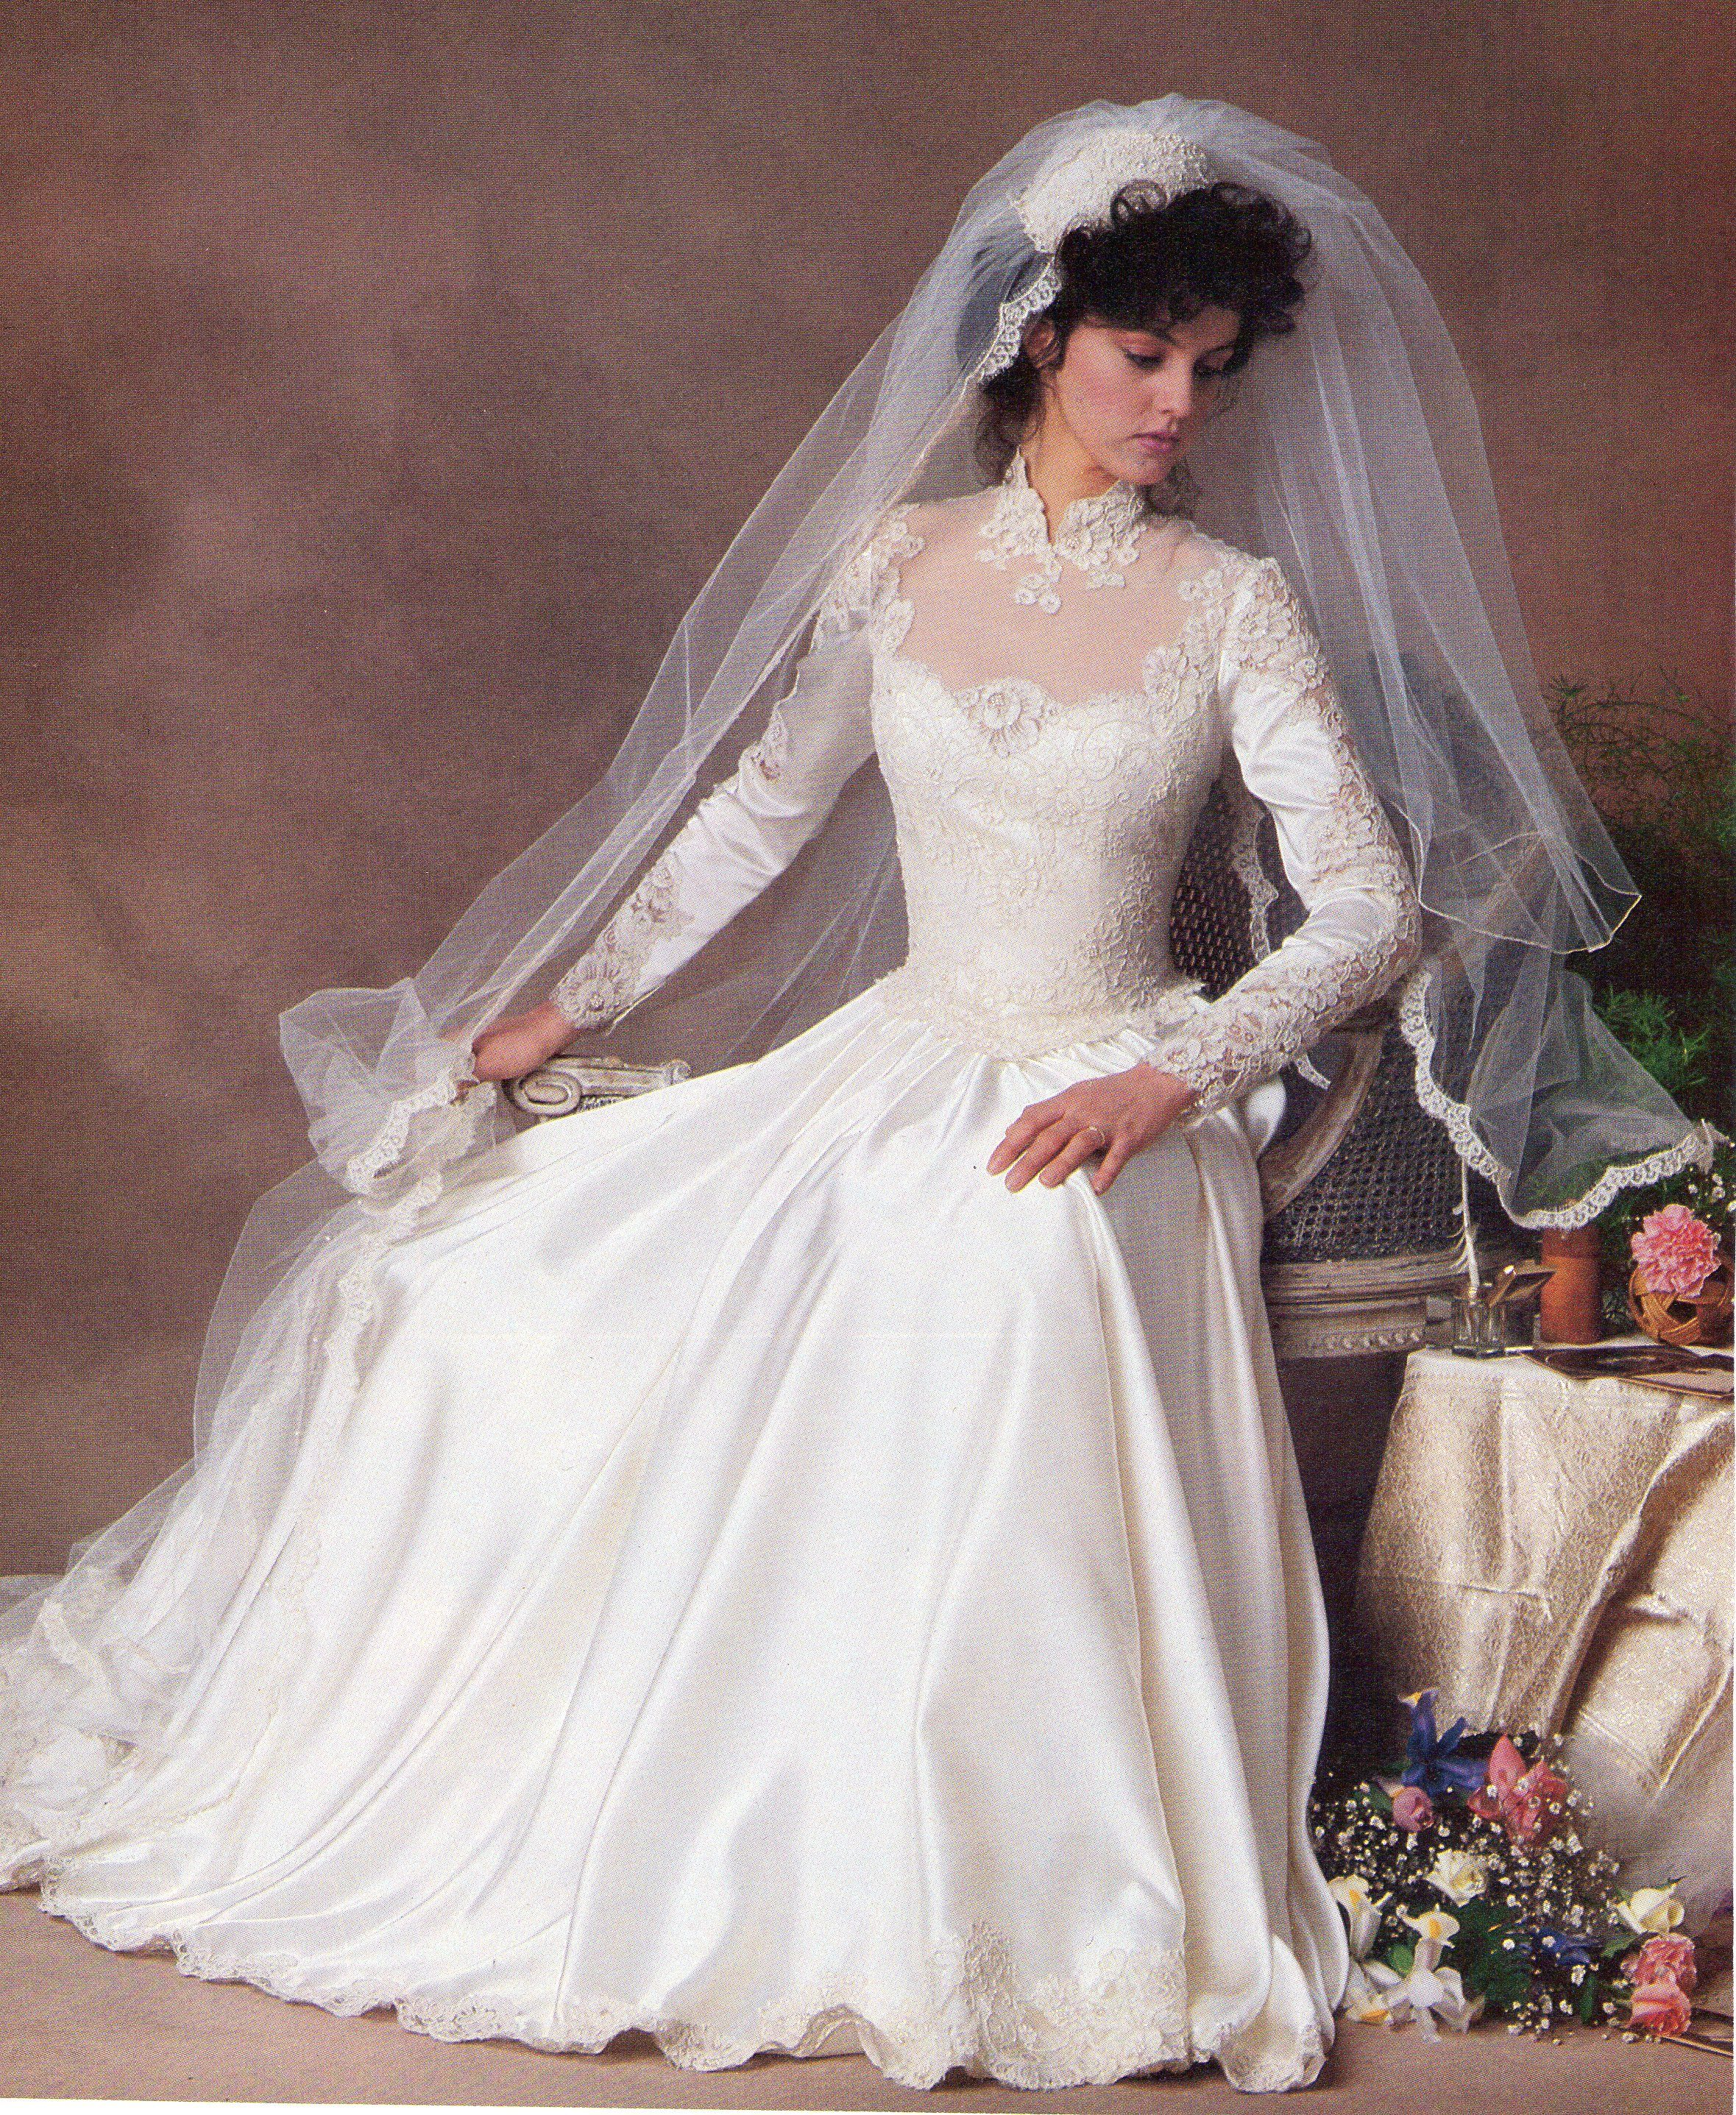 Pin By N Loren On 80'S AND 90'S BRIDAL WEDDING FASHION